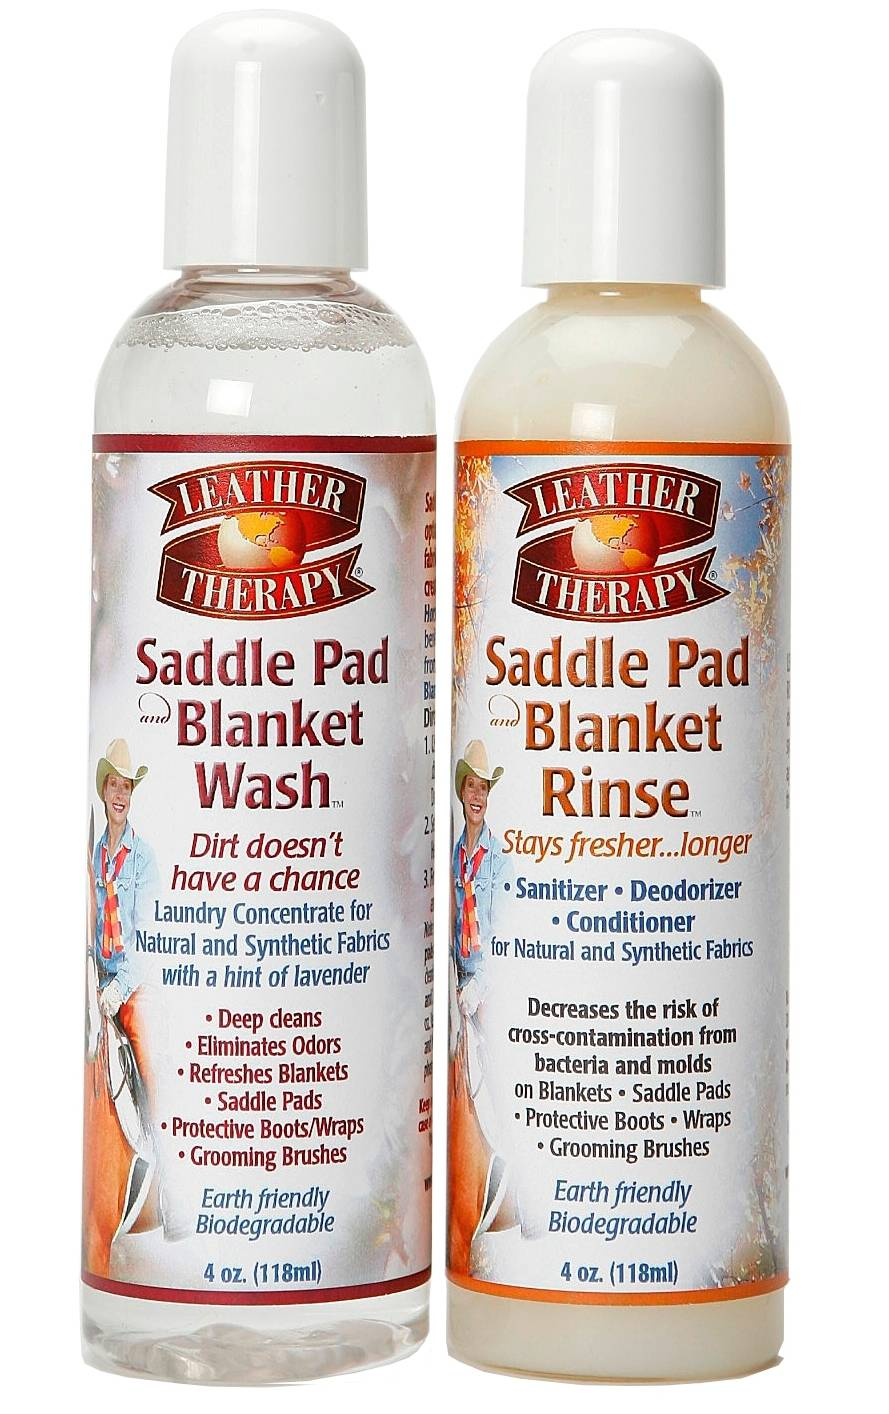 Leather Therapy Saddle Pad and Blanket Wash Gift Set